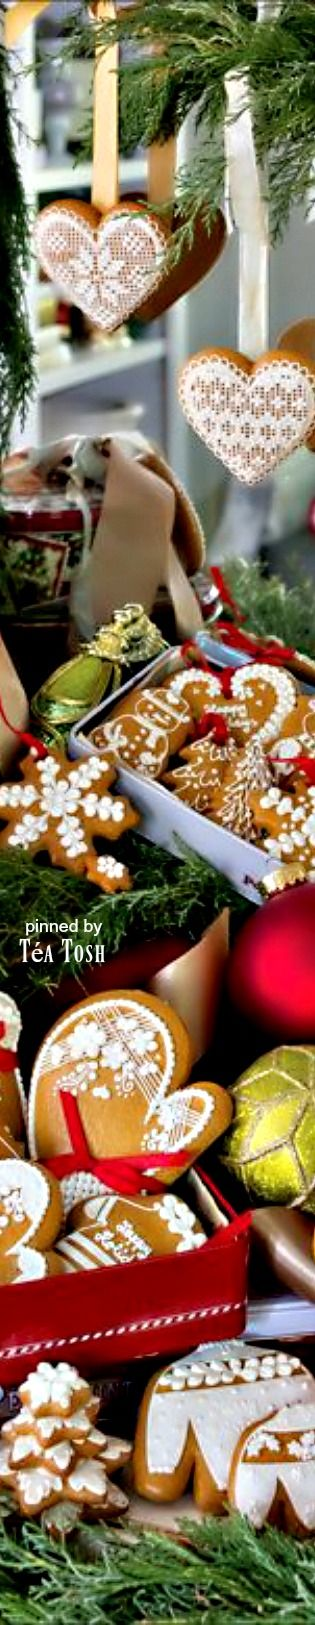 ❇Téa Tosh❇ The Special Holiday Issue